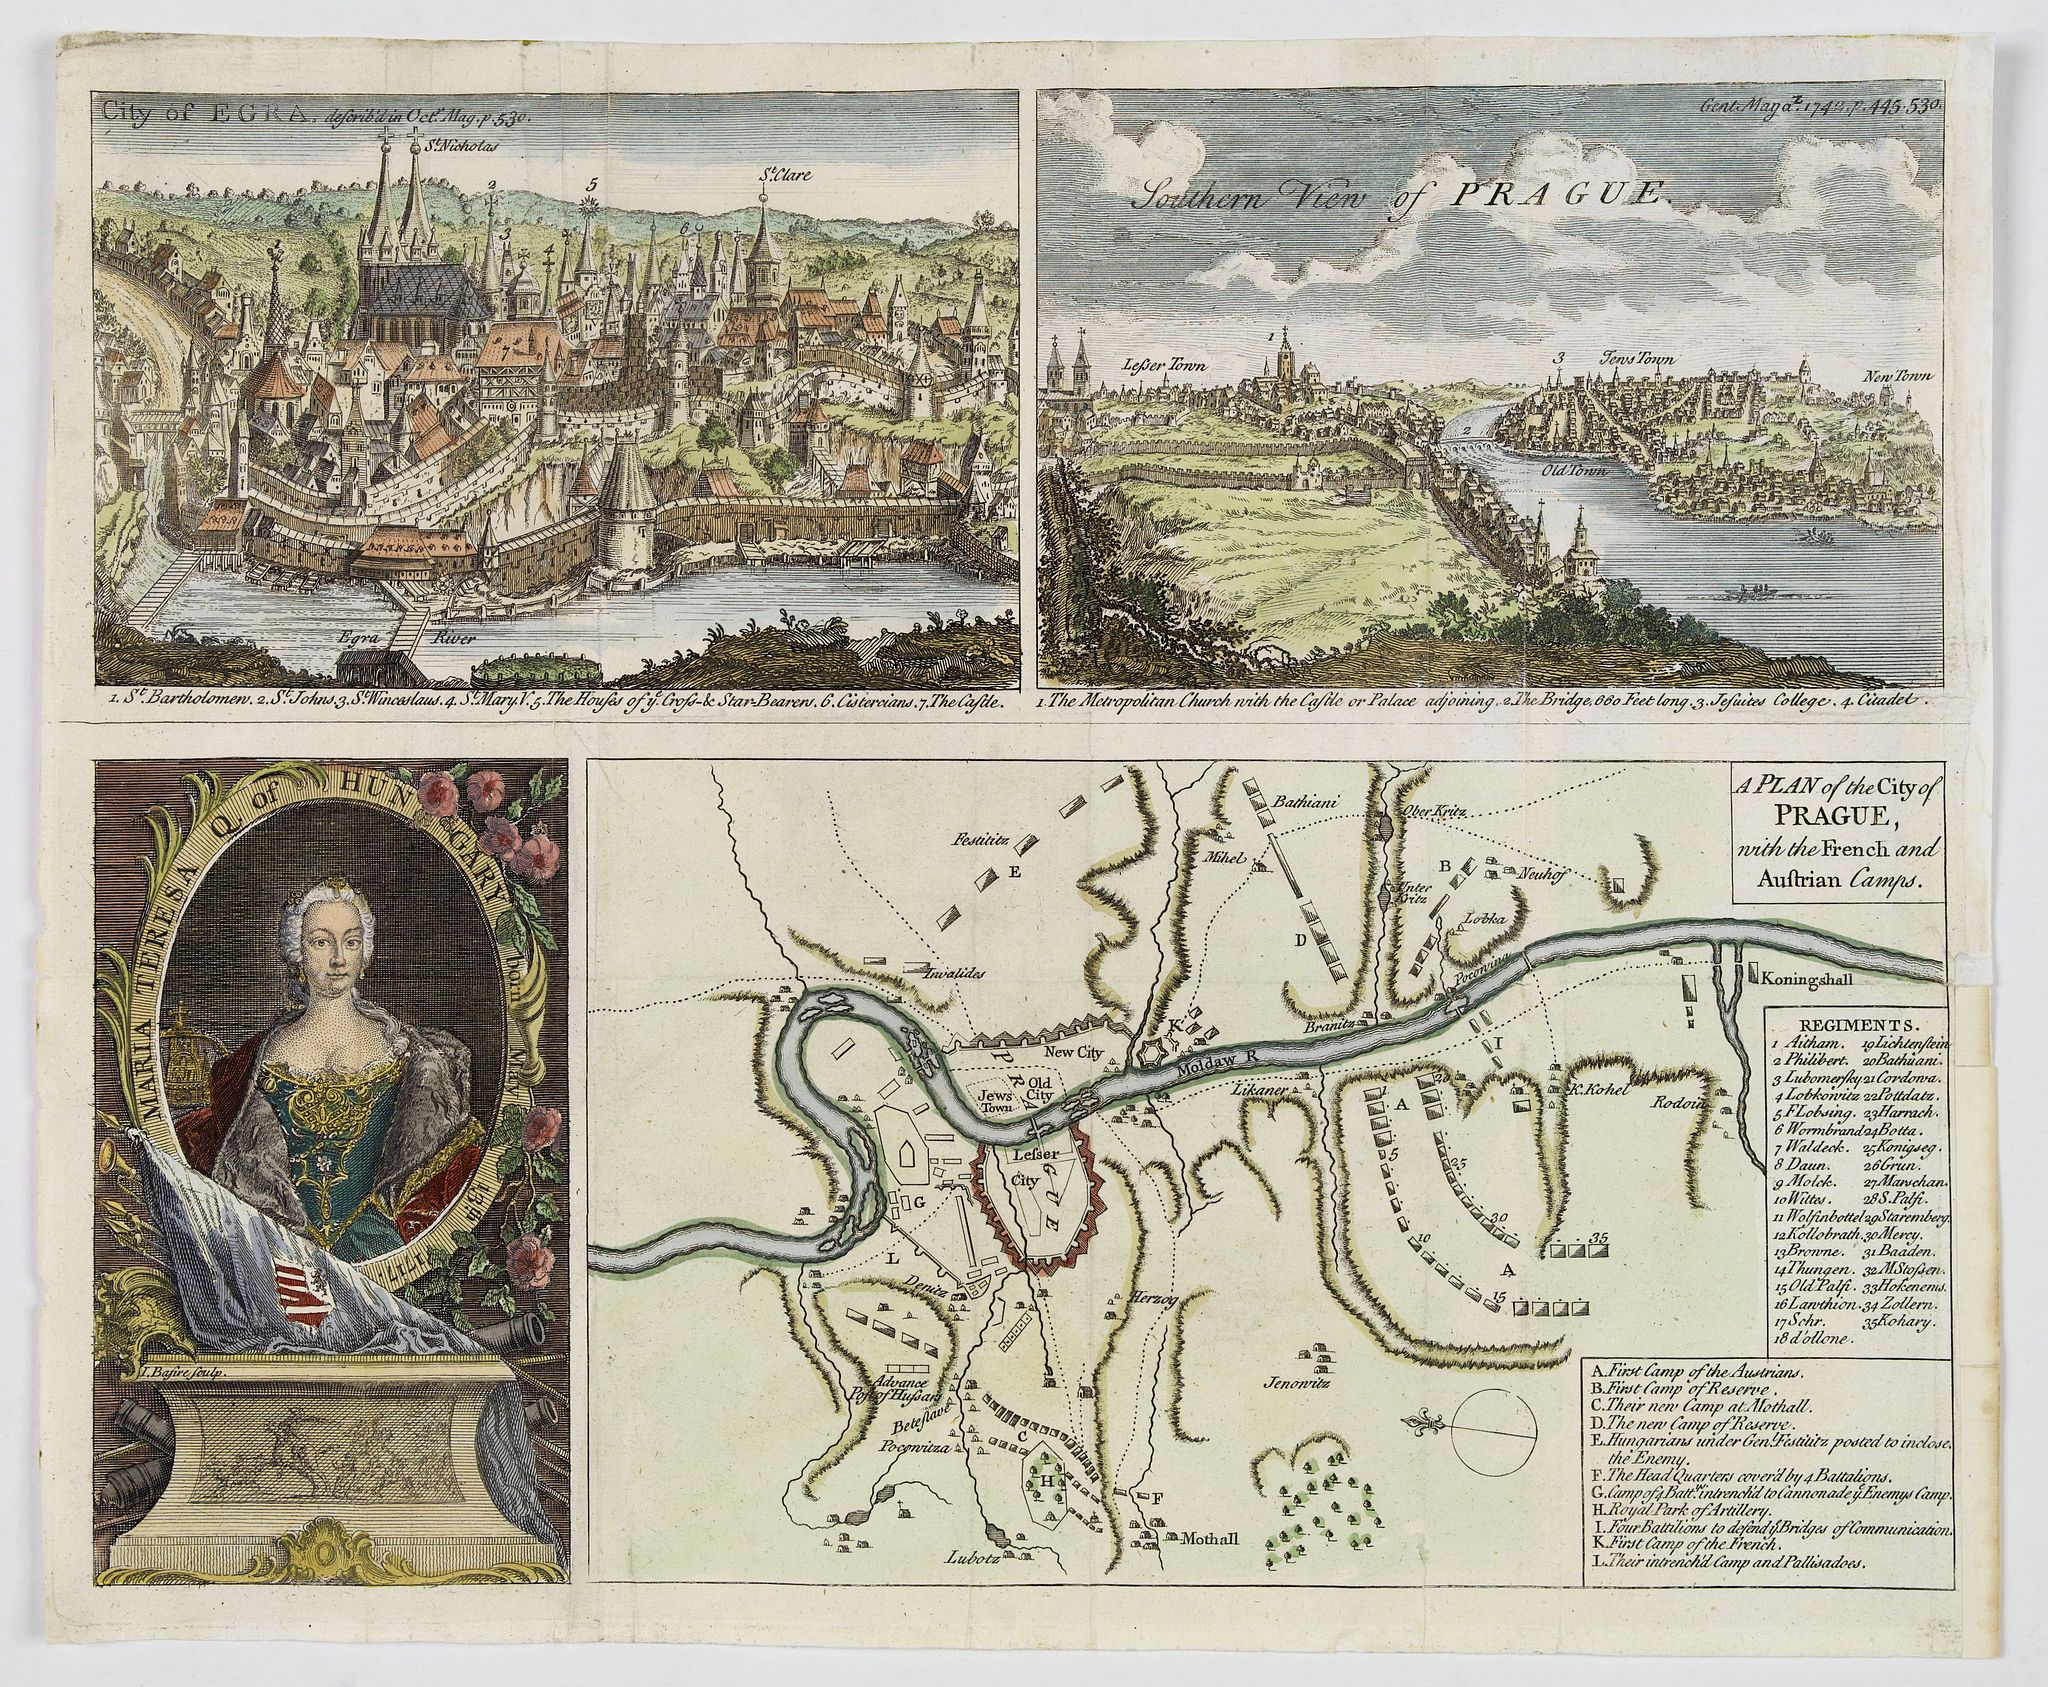 THE GENTLEMAN'S MAGAZINE. - A Plan of the City of Prague, with the French and Austrian Camps.